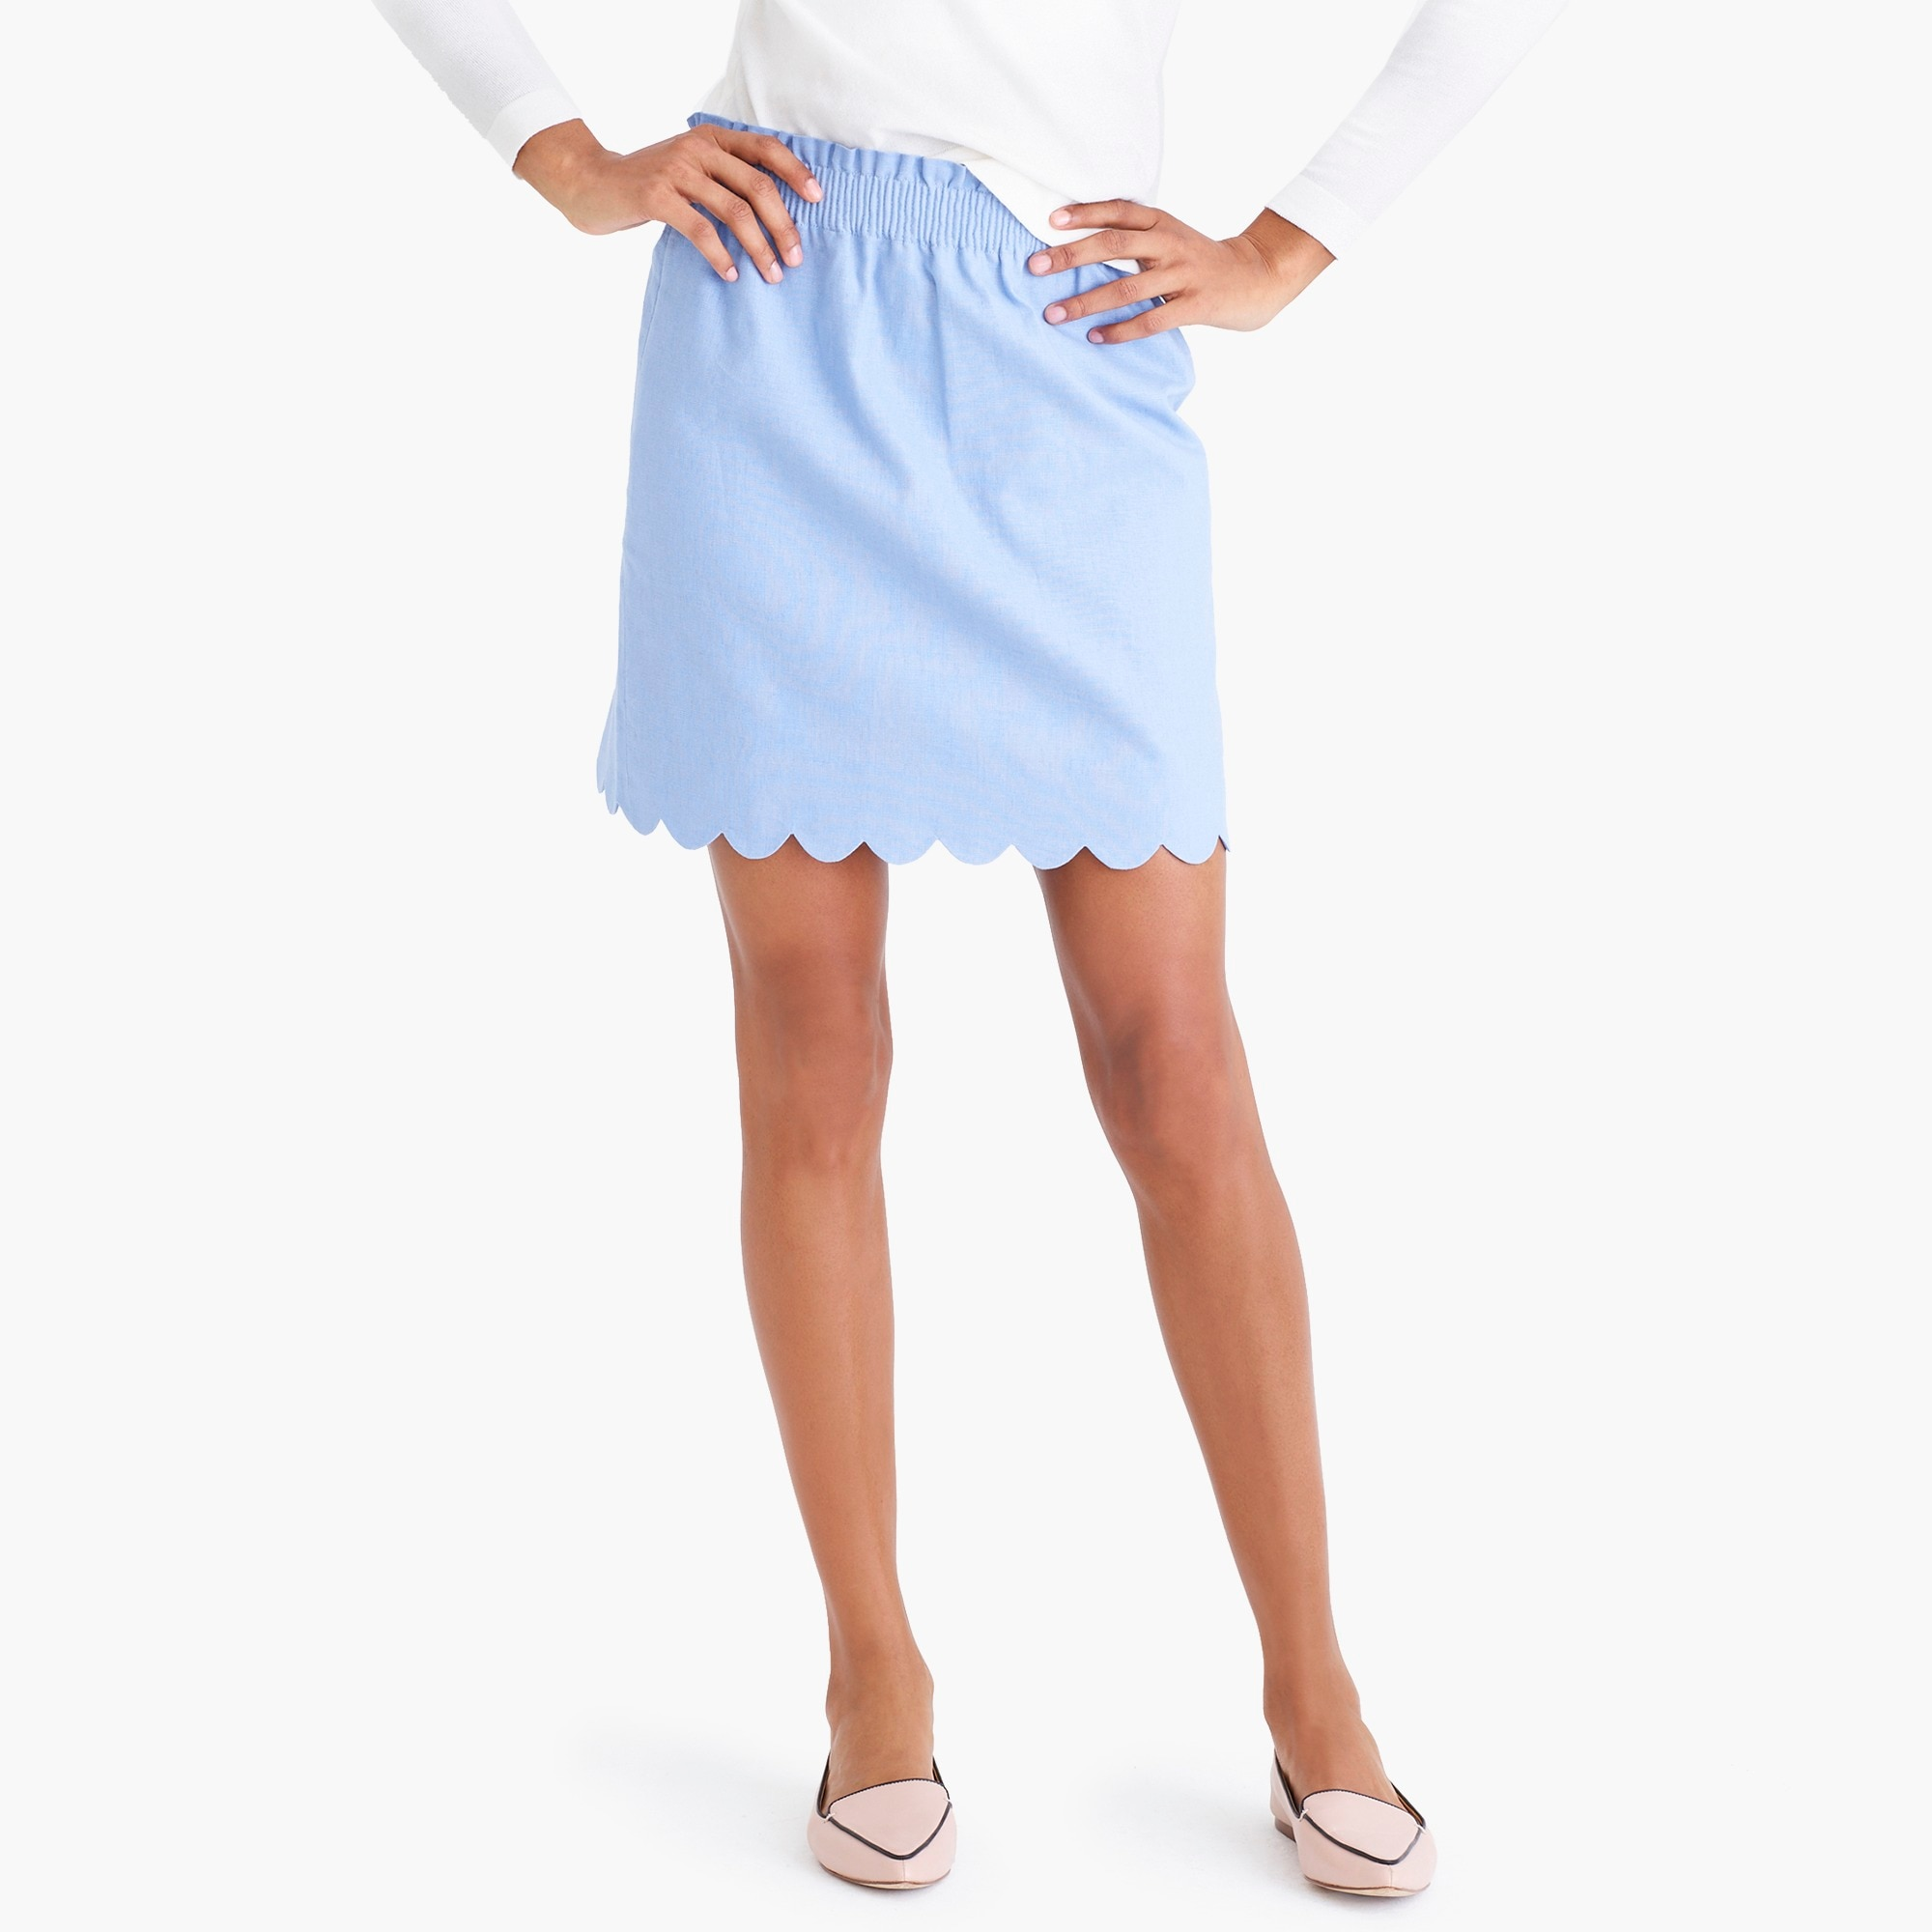 factory womens Scalloped sidewalk skirt